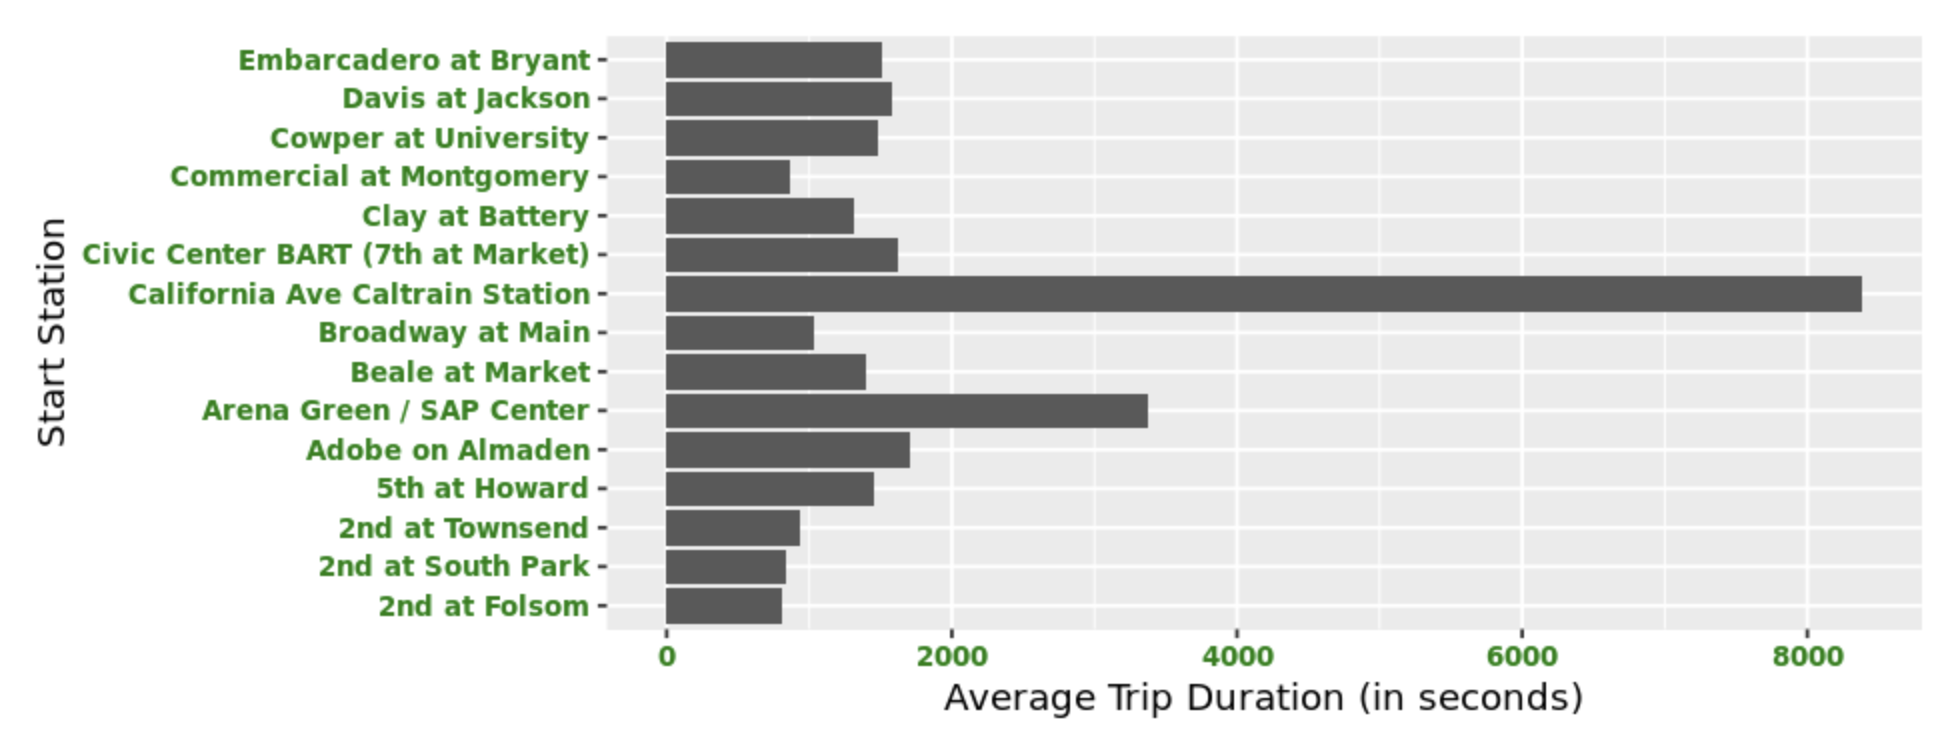 Creating Horizontal Bar Charts Using R Data Visualization